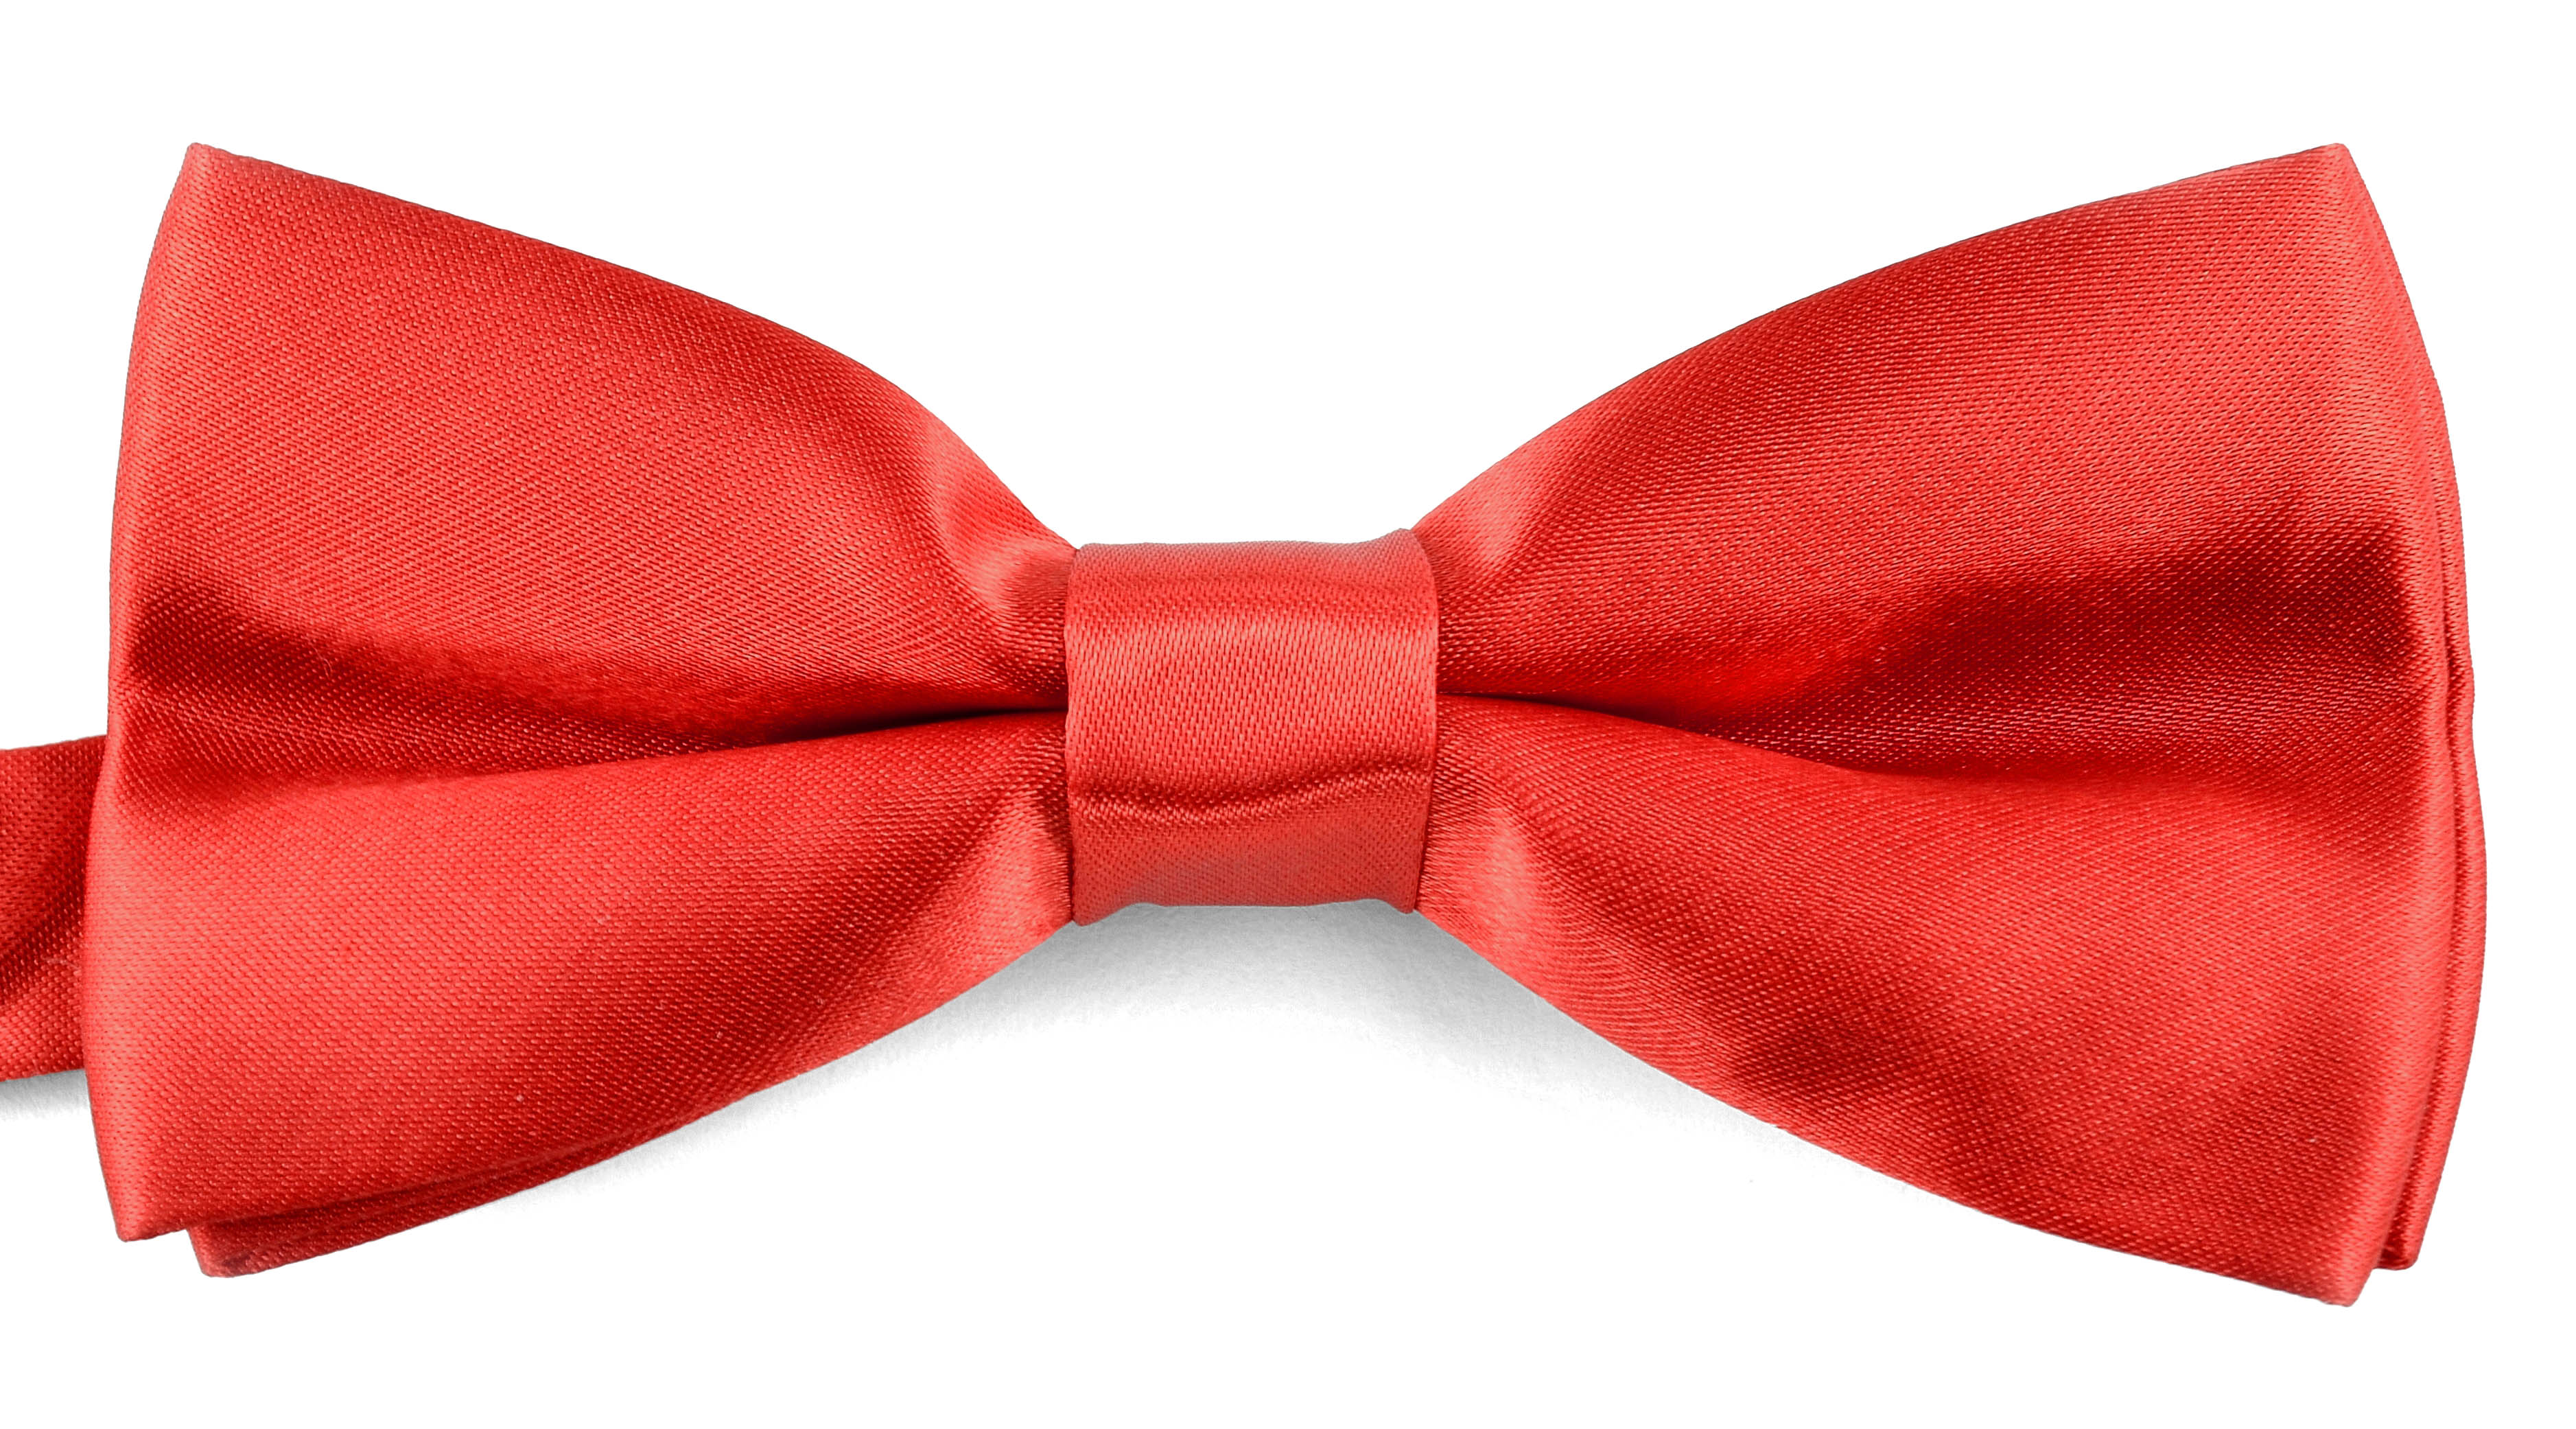 Classic Bow Ties For Men Adjustable Banded Pre-Tied Formal Wedding Tuxedo Gift Box - Coral Sunset